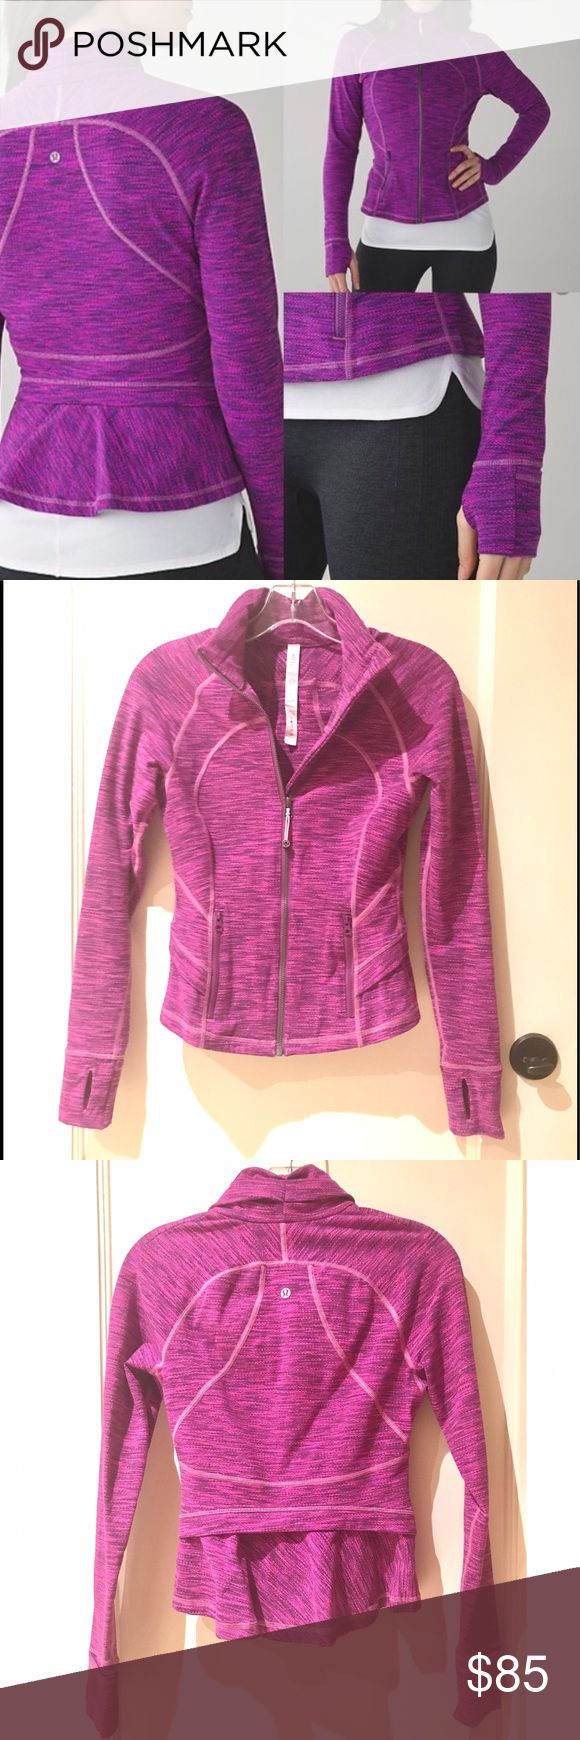 """NWOT Lululemon Hustle In Your Bustle Jacket SOLD OUT Lululemon Hustle In Your Bustle Jacket. Draped collar for warmth, relaxed hem for easy moving, and added thumbholes and fold-over Cuffins™ finger covers to keep sleeves down & fingers warm. Similar to the define jacket but with a more feminine PEPLUM HEM! Soft and comfortable, it is also excellent for layering. It is very flattering and the color is amazing! Form fitting yet slimming. Width: 15"""" across under the arms. New without tags…"""